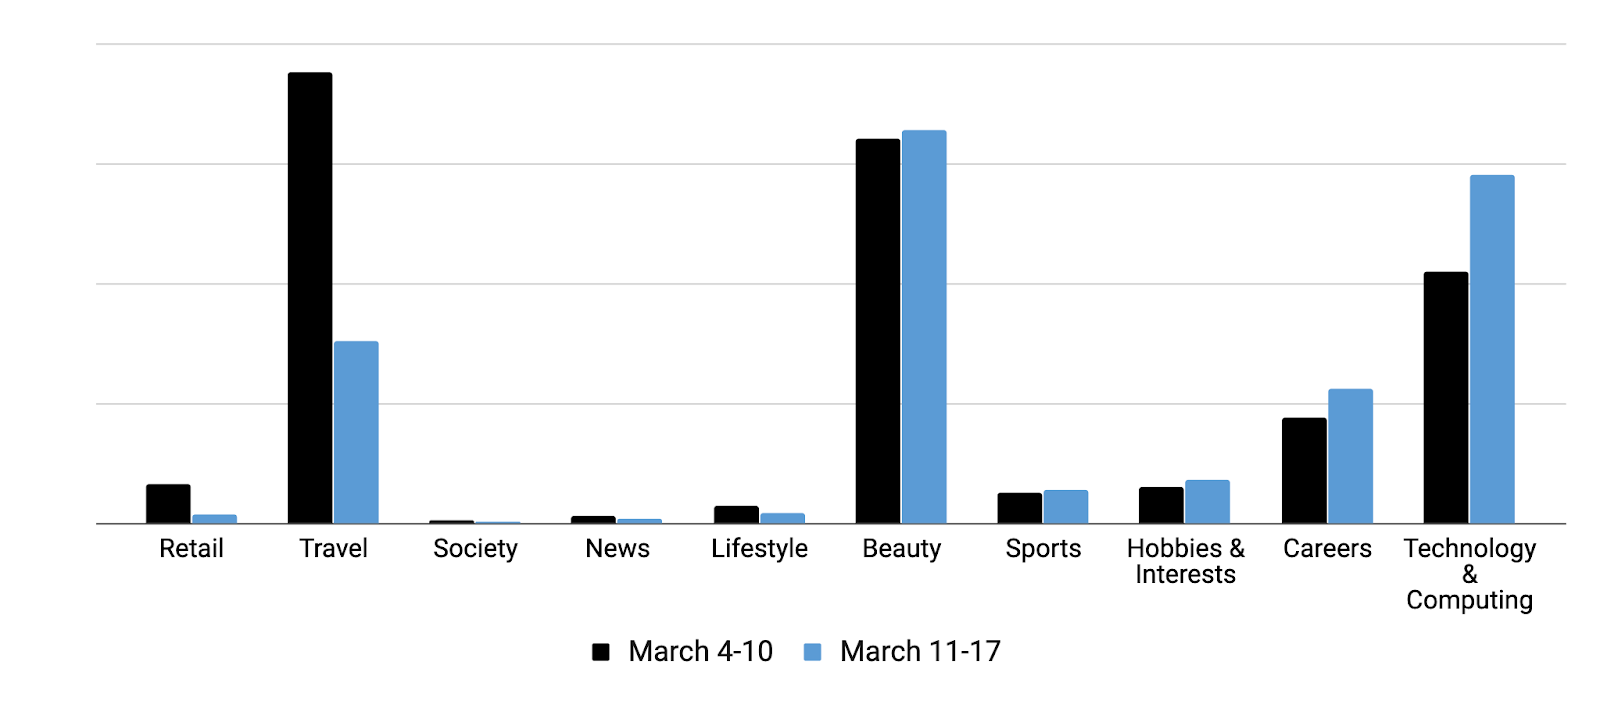 COVID-19 Effect on Ad Spend by Category